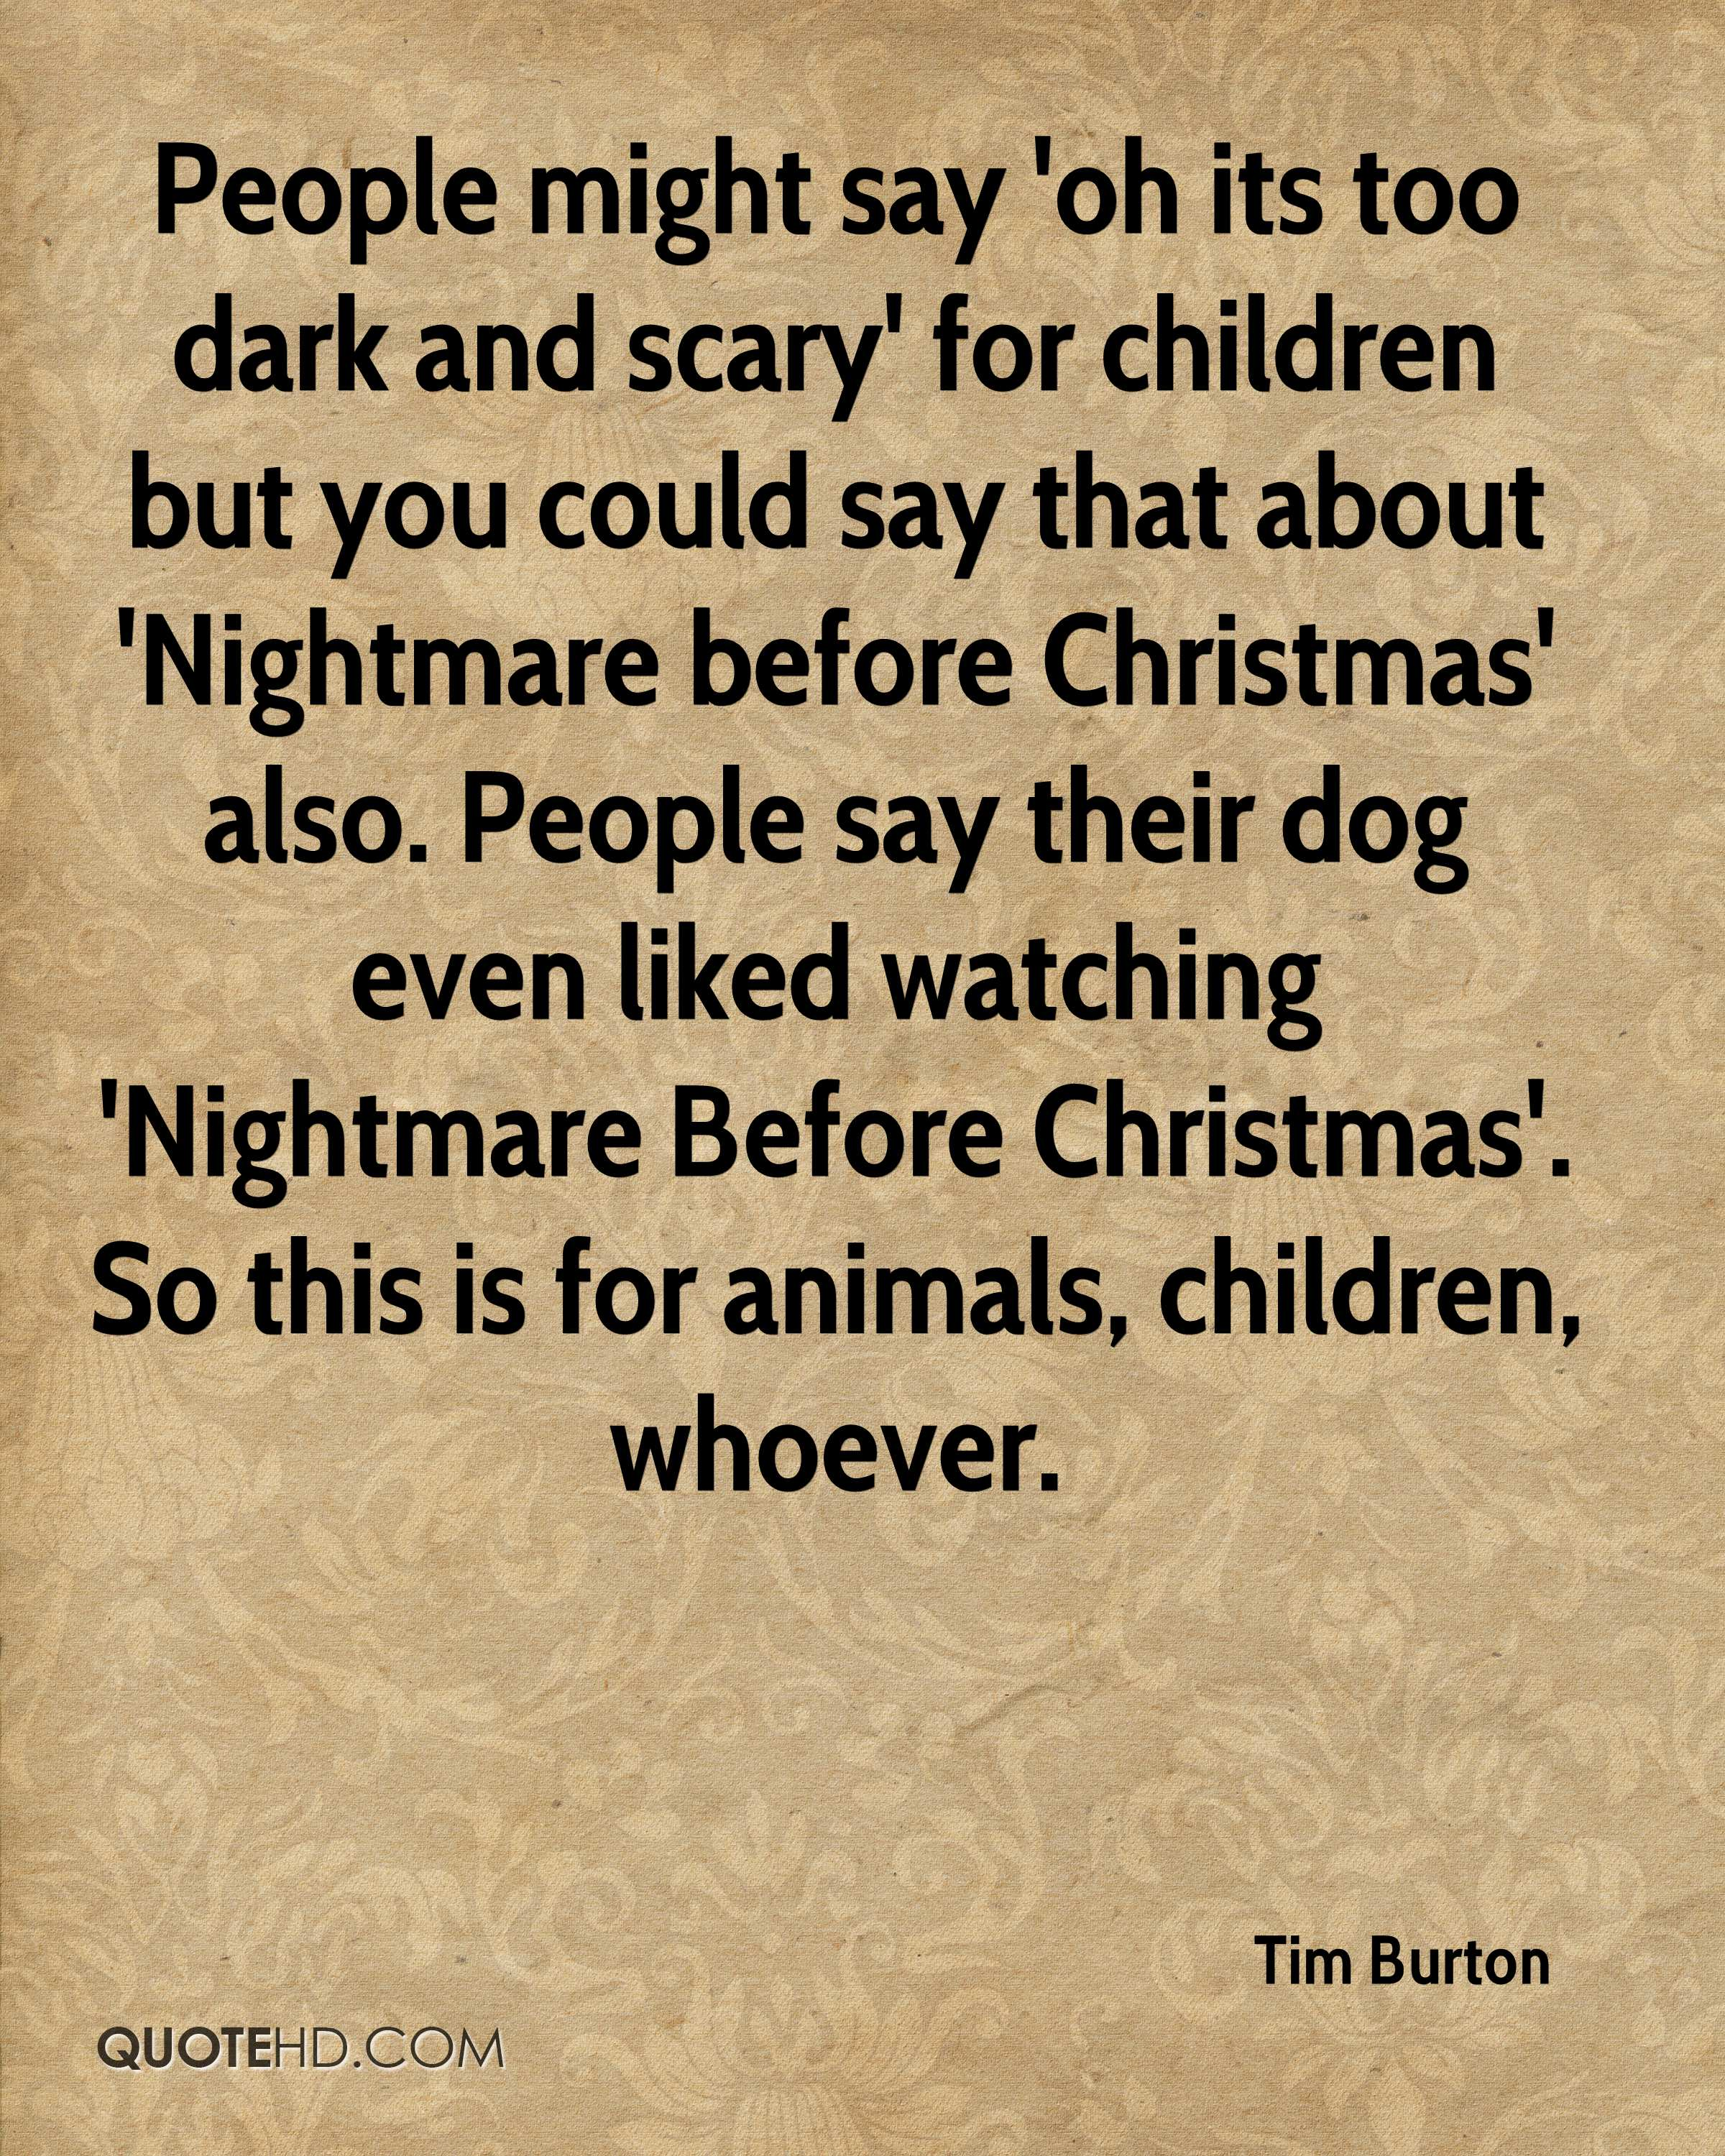 Tim Burton Christmas Quotes | QuoteHD